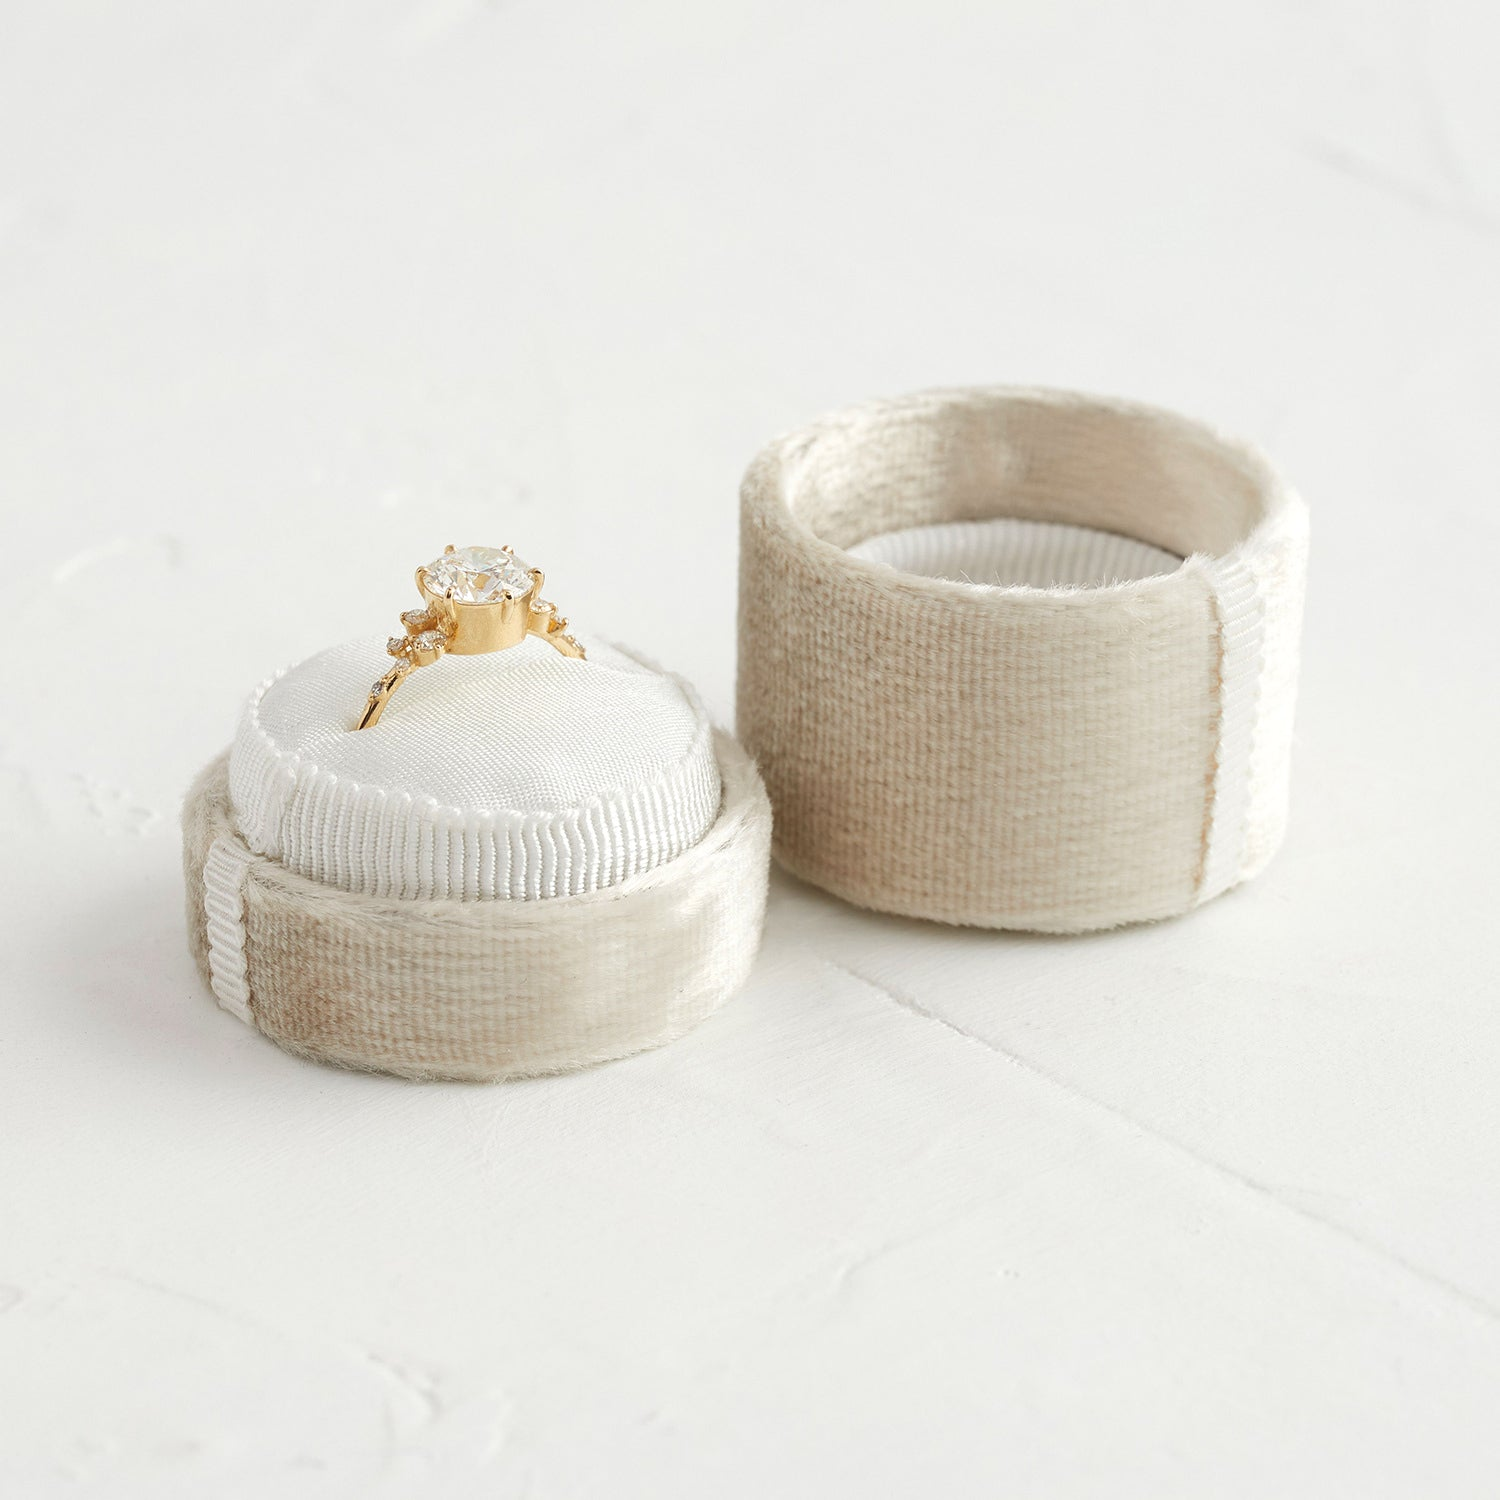 Velvet Ring Box in Ivory